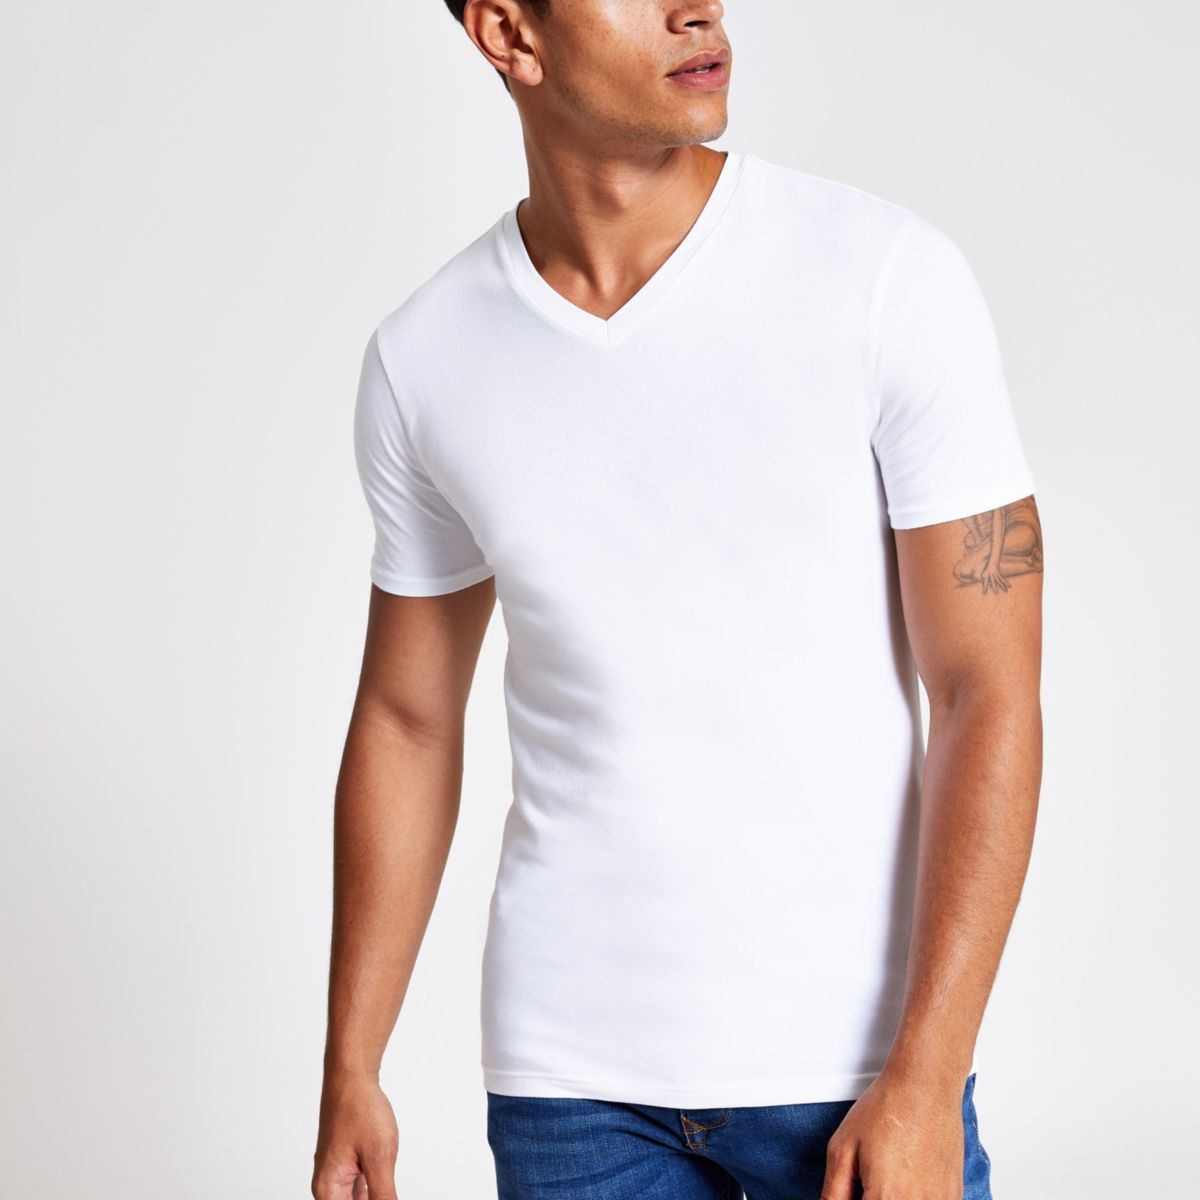 T fit White V neck shirt muscle x1pIpq